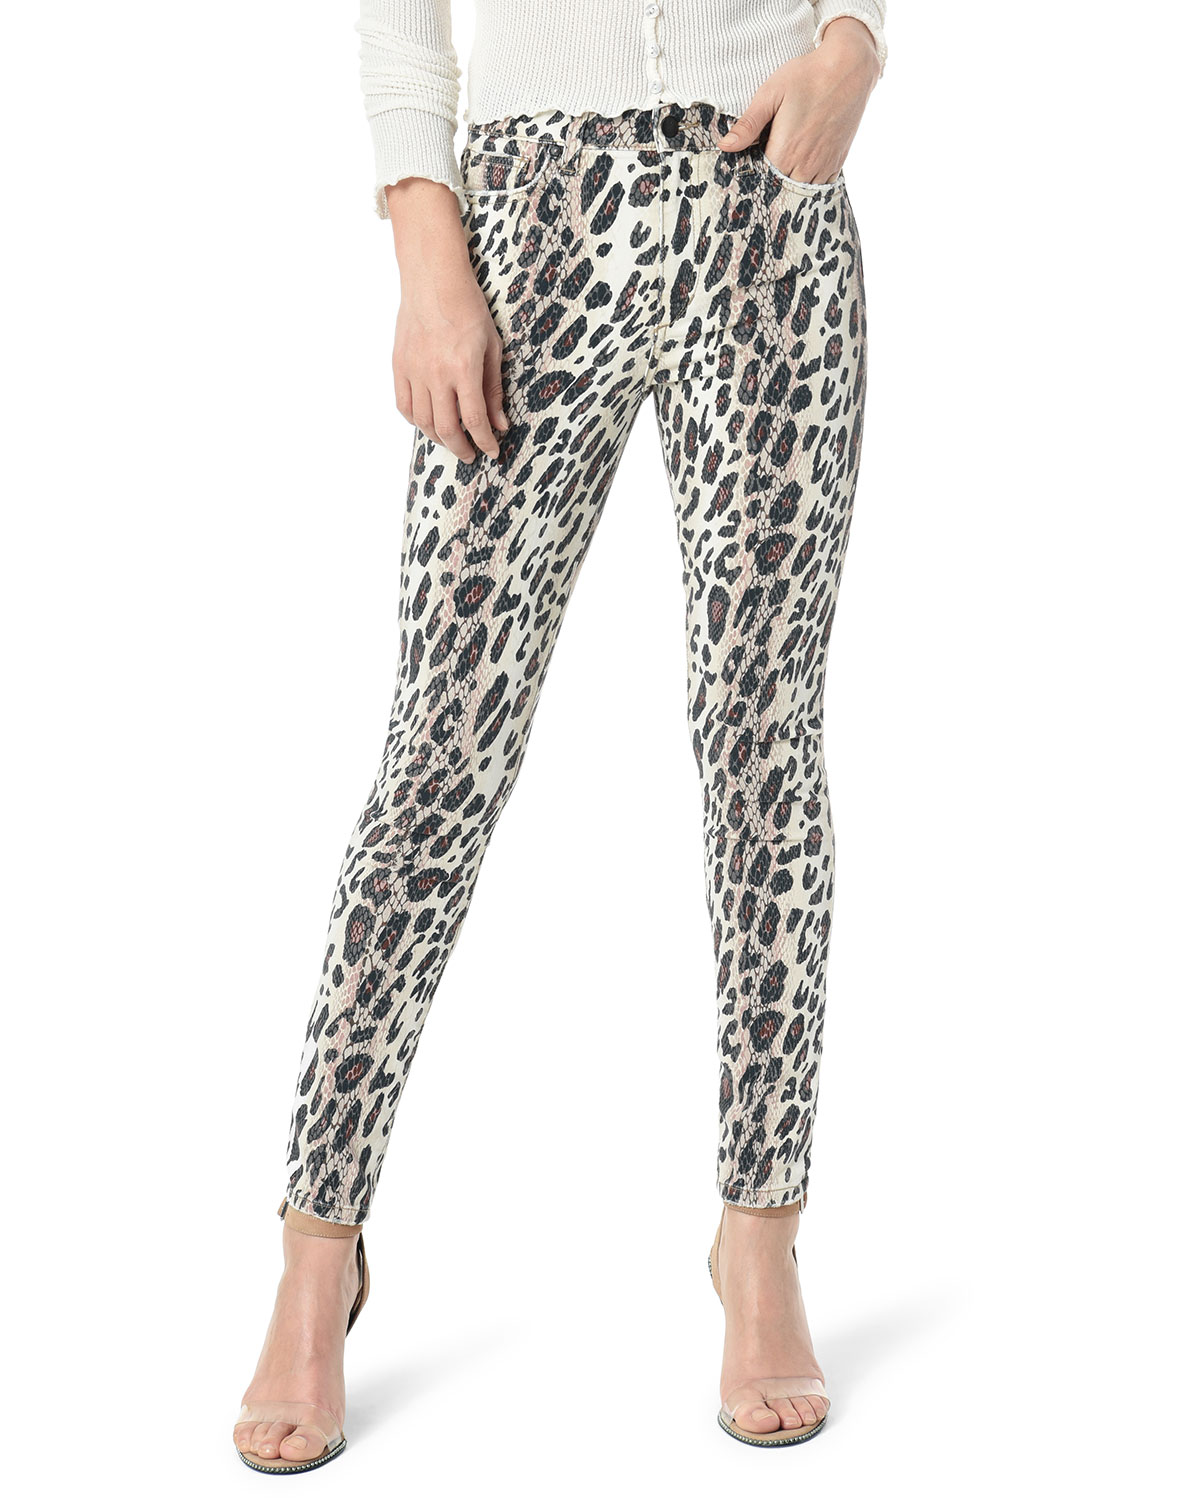 The Charlie Ankle Skinny Leopard Print Jeans